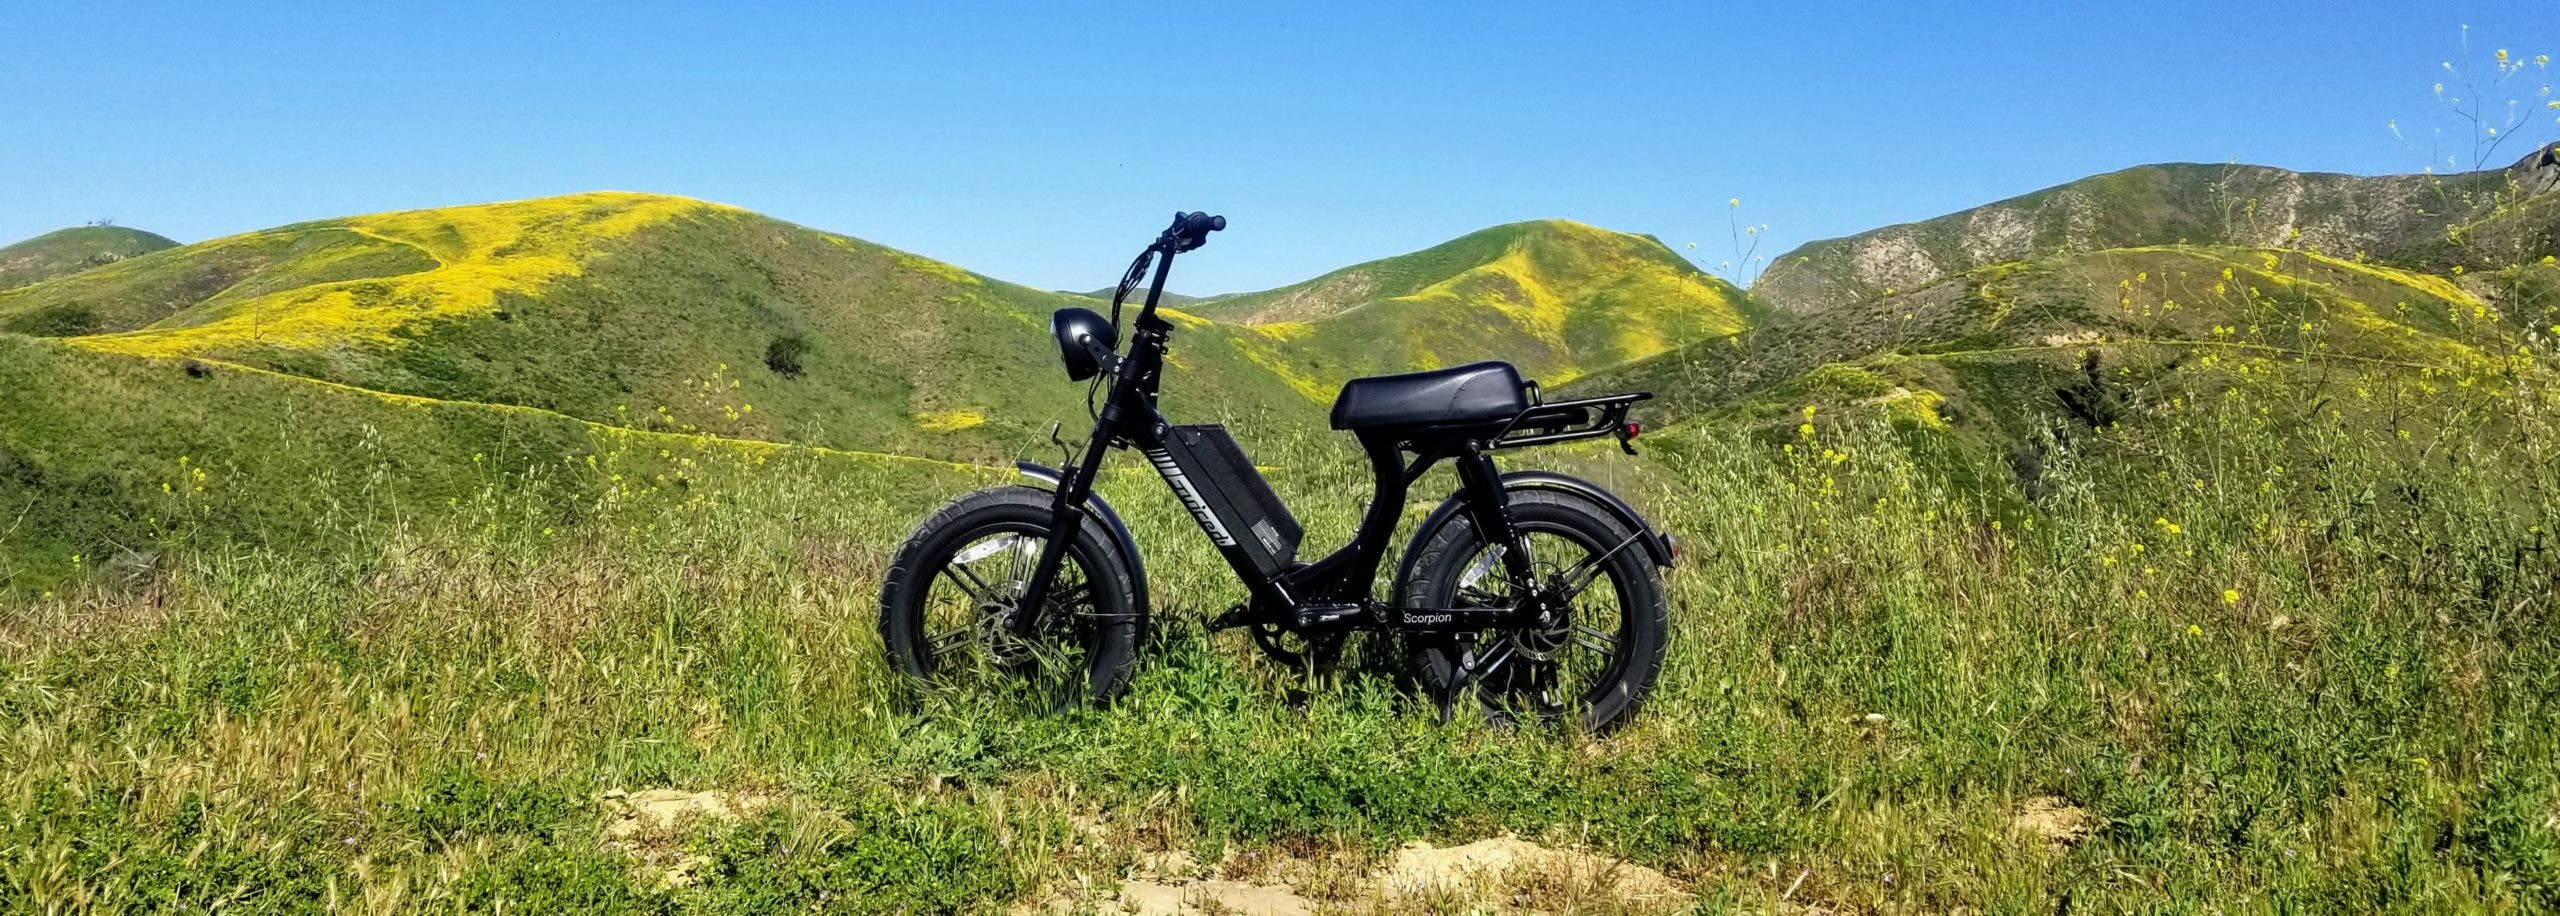 Sporting a throttle and a top speed of 28 miles per hour, the Juiced Scorpion is more of a moped than an e-bike